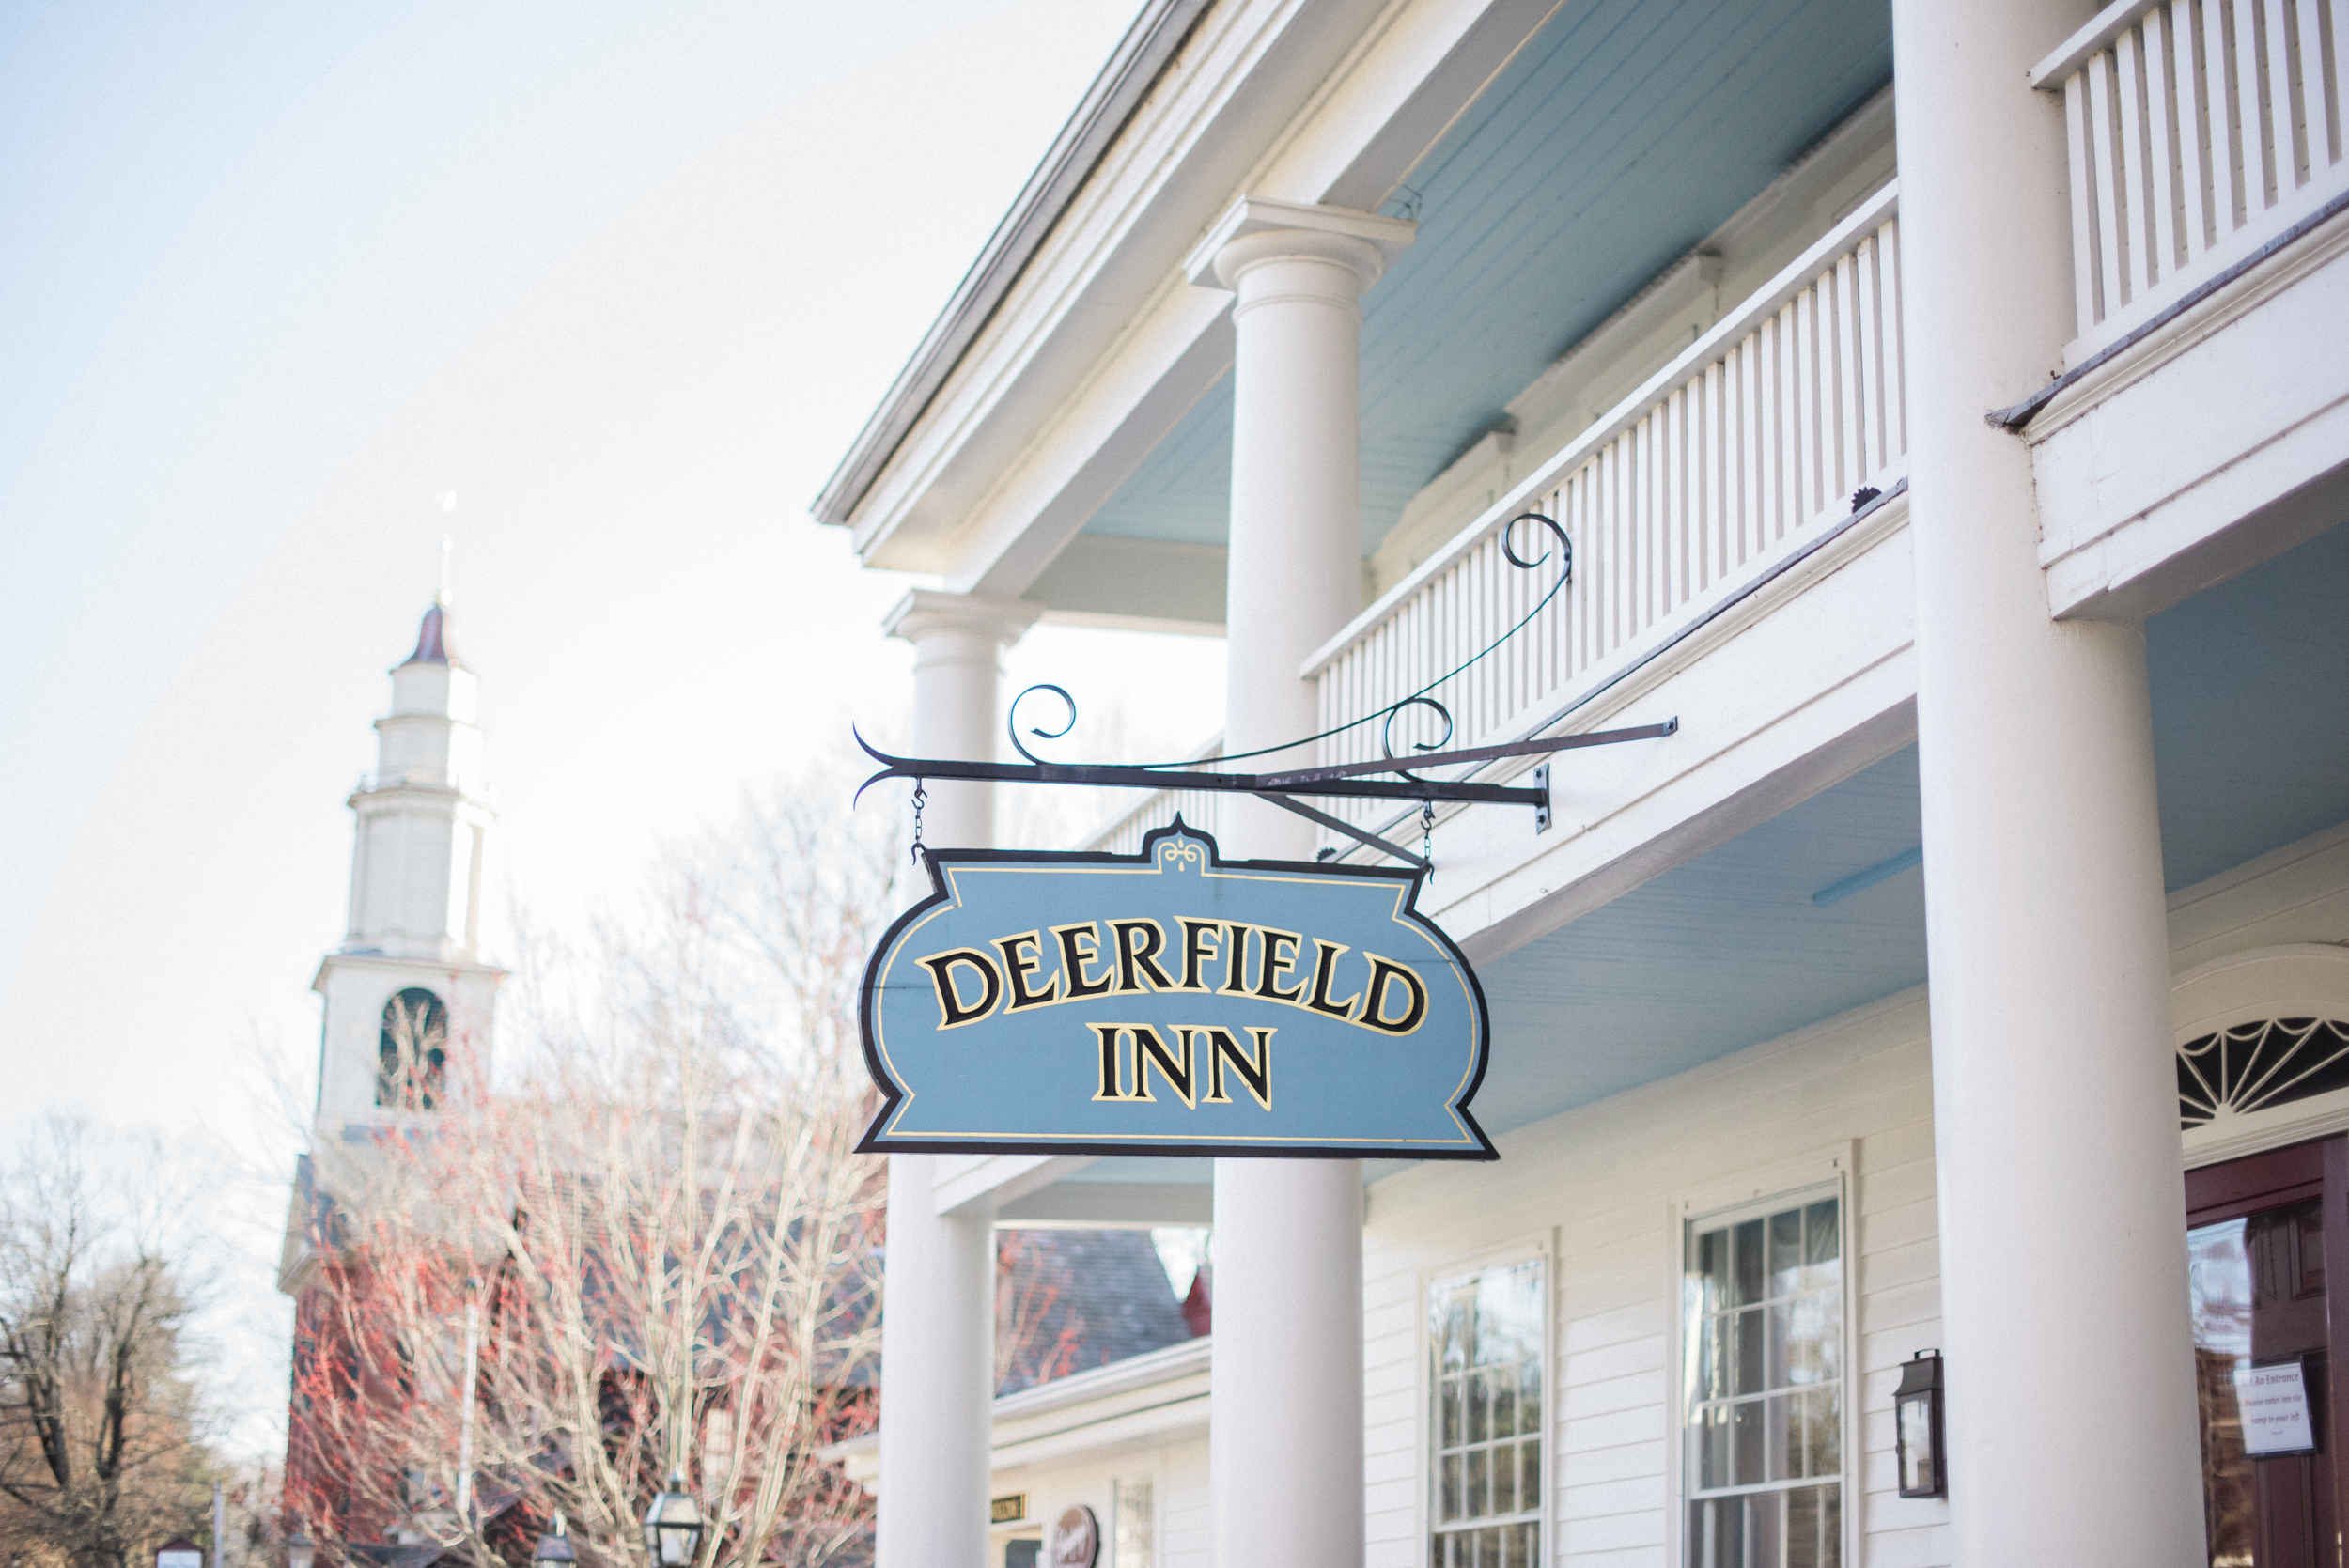 The Deerfield Inn at Historic Deerfield